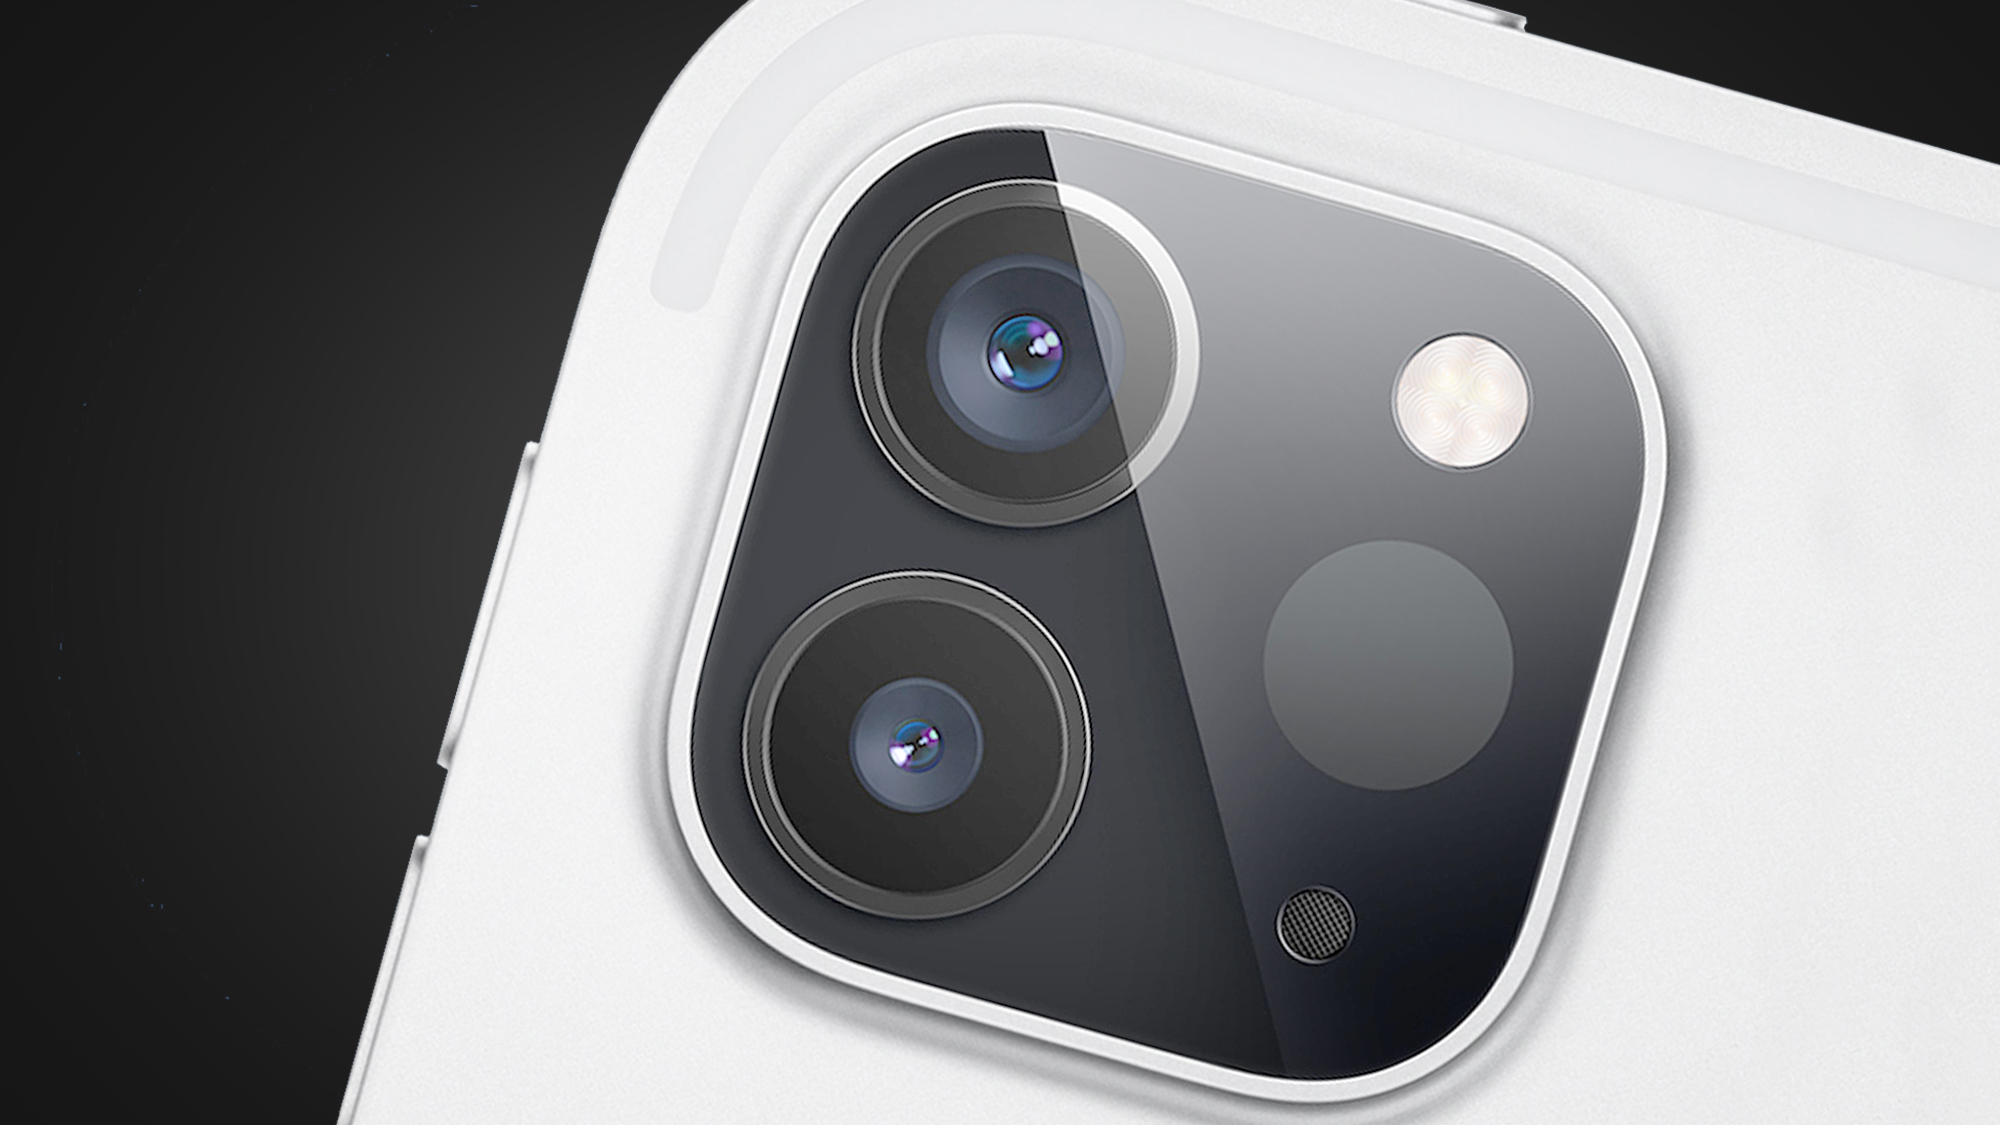 The rear cameras of the Apple iPhone 12 Pro